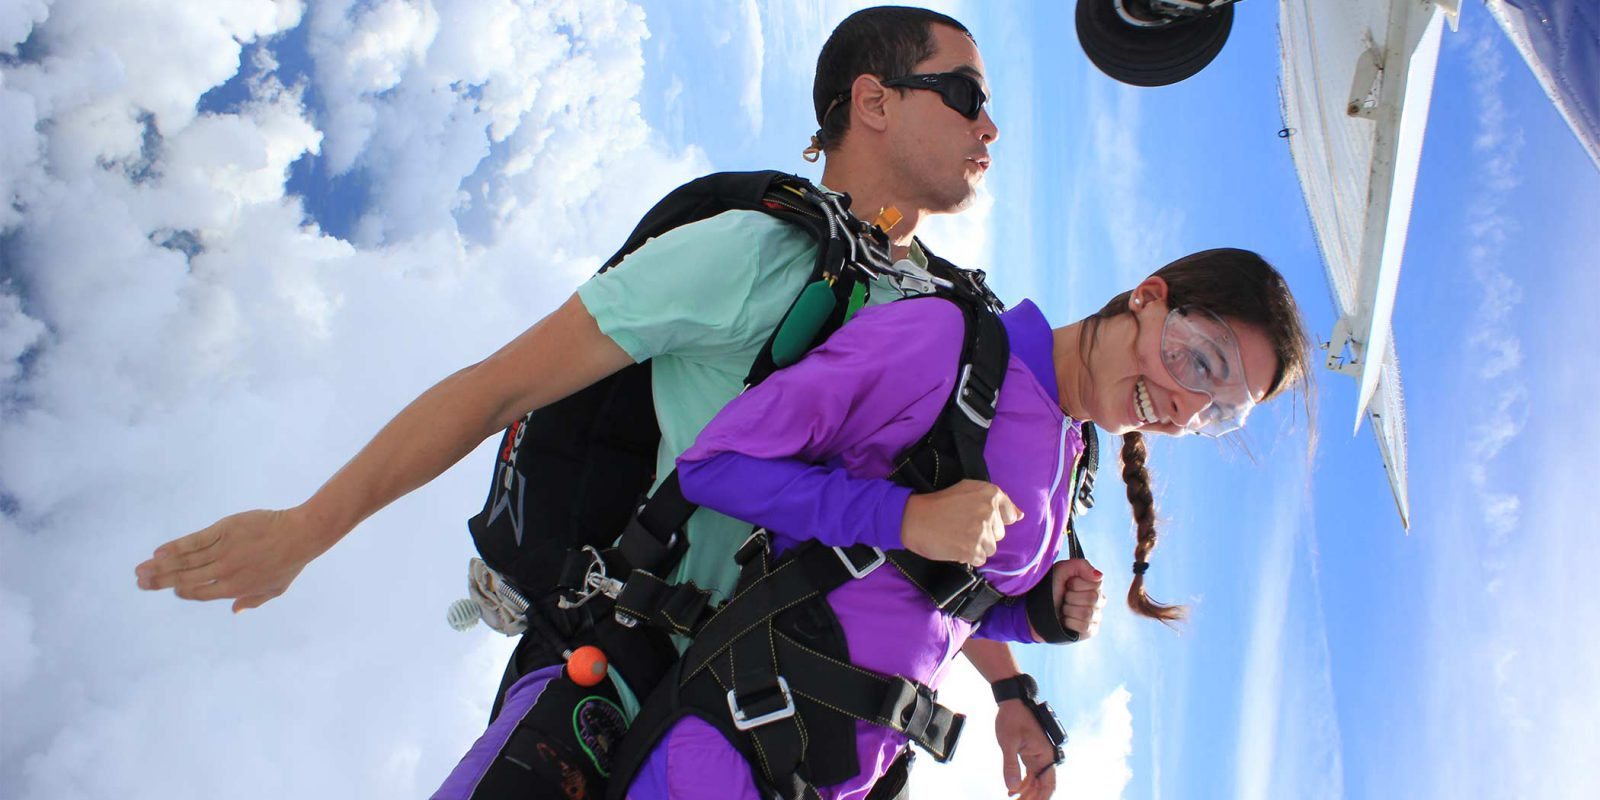 young woman in purple jumpsuit smiles after exiting plane while making her first skydive